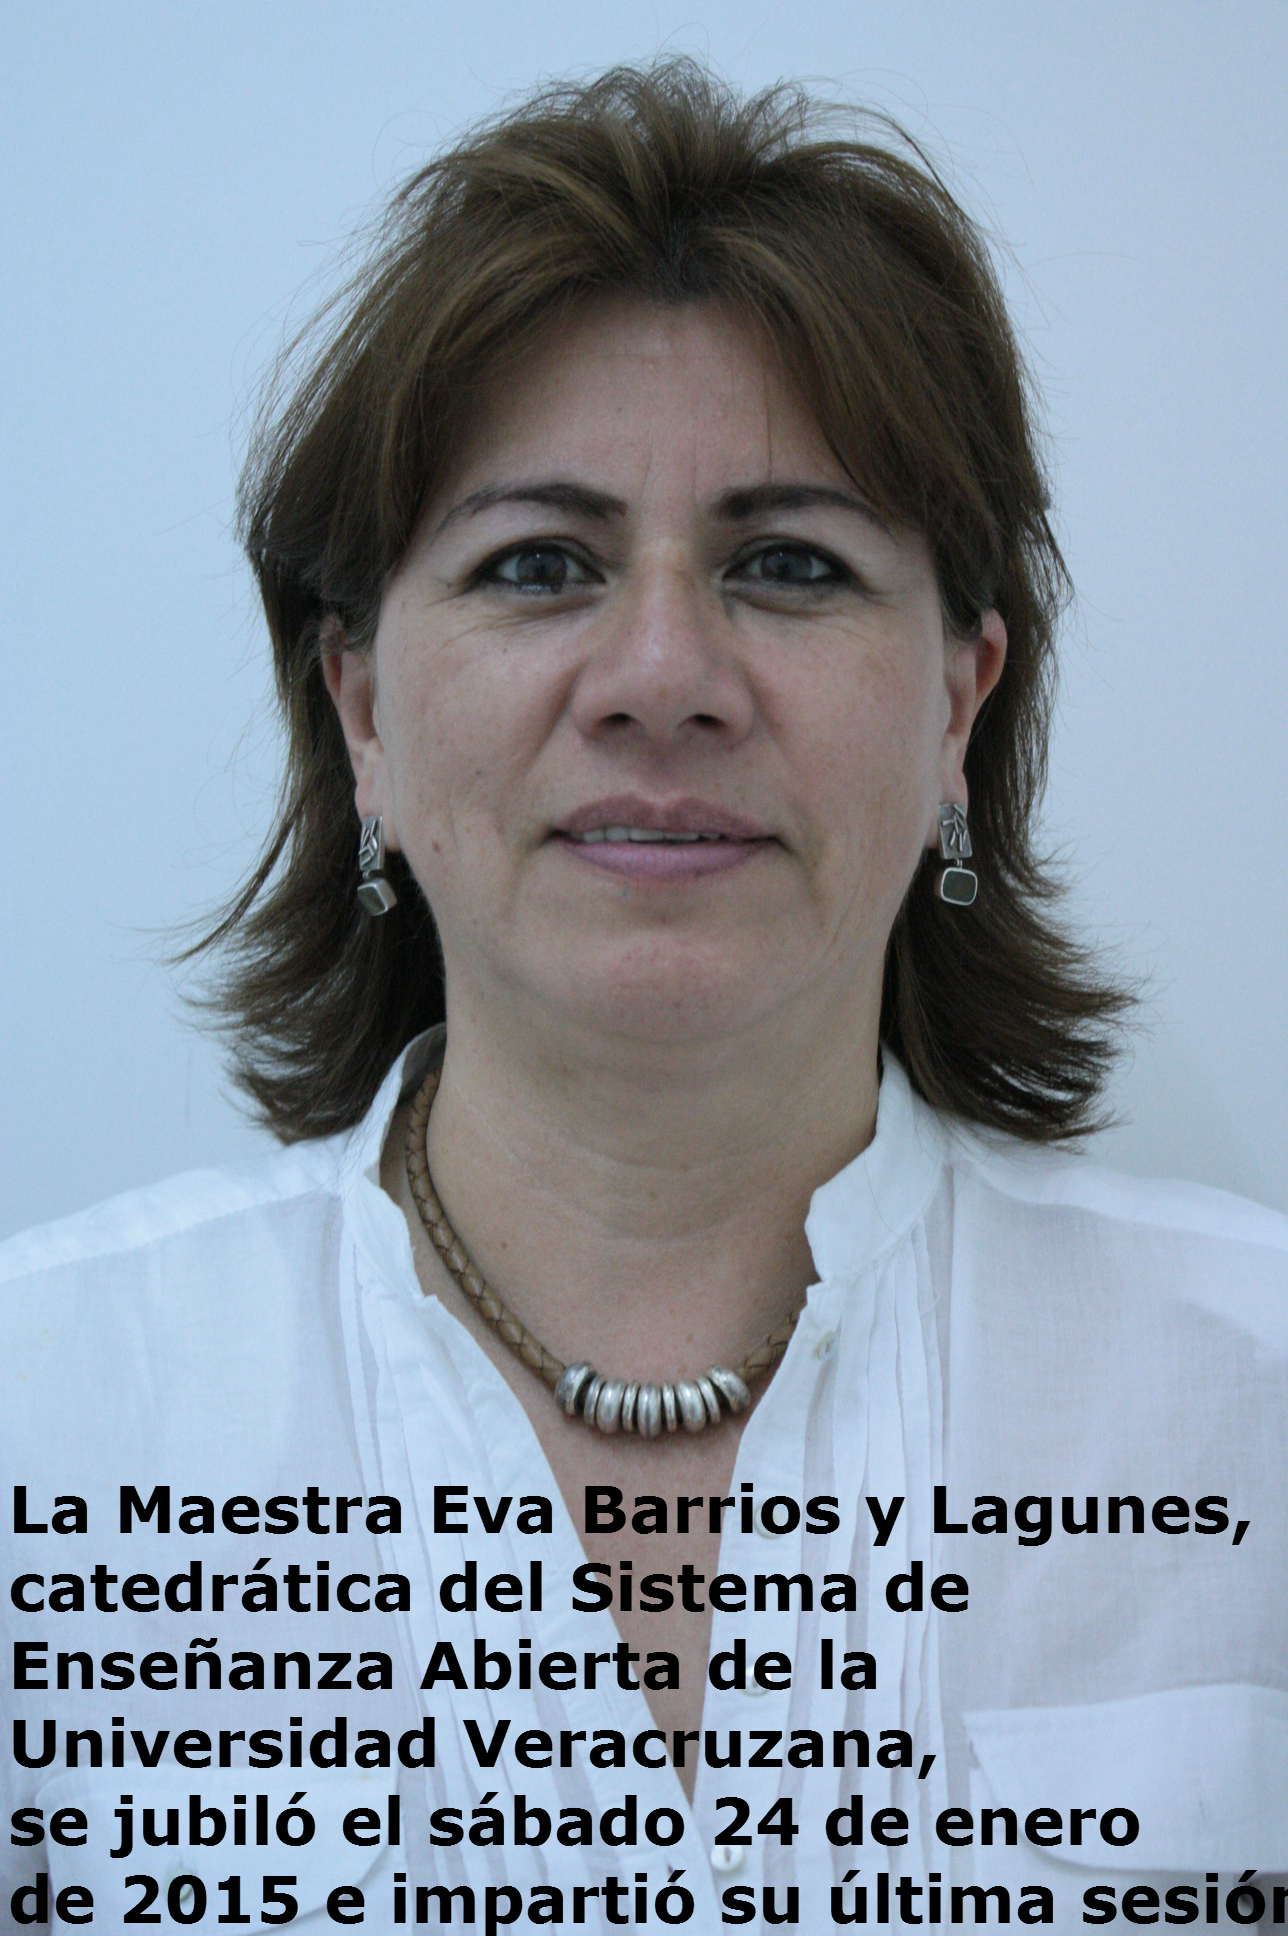 Eva_Barrios y Lagunes_SEA